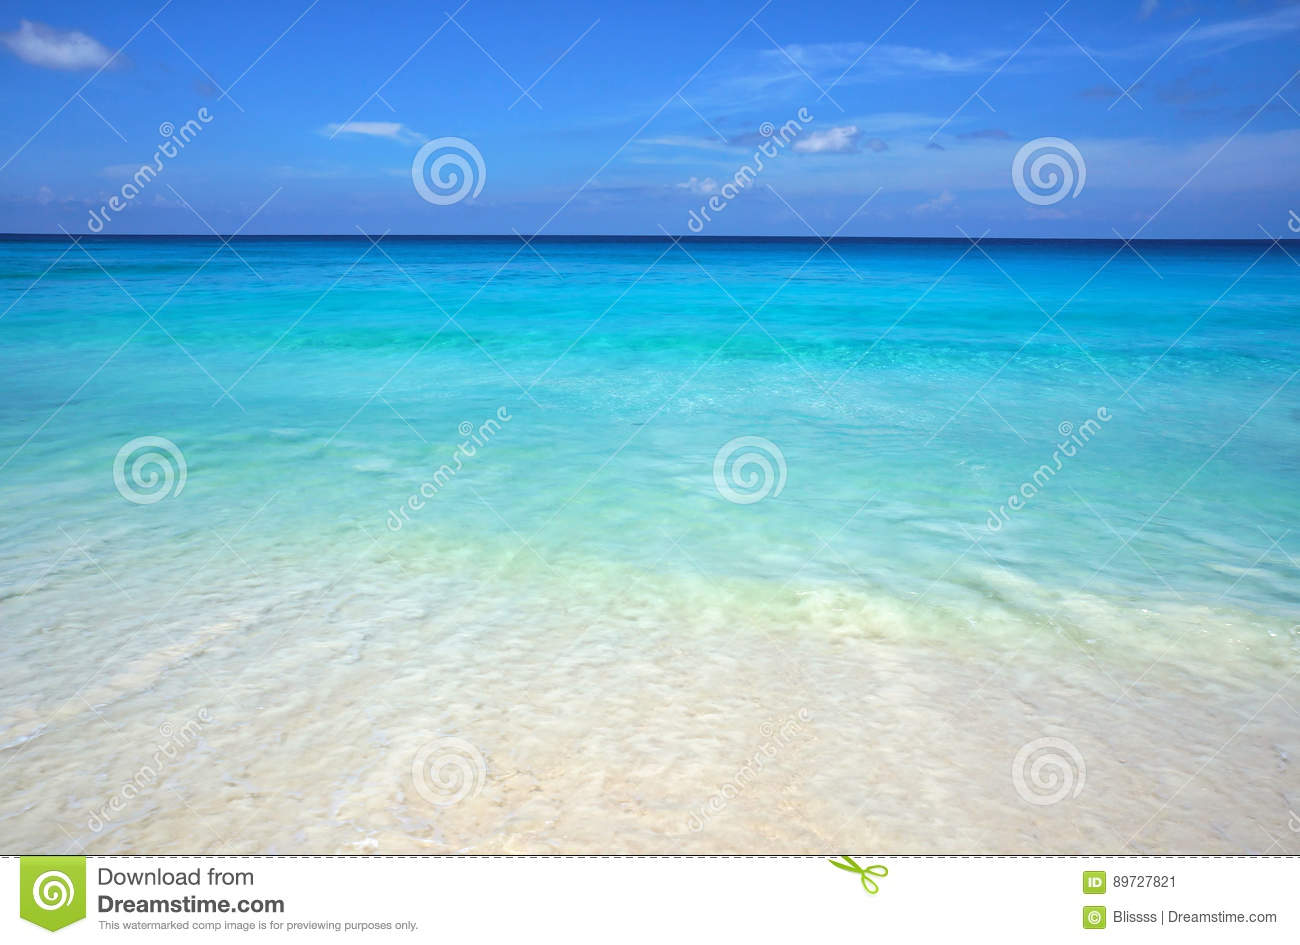 Scenic seascape of azure transparent ocean water and blue sky. Tropical beach with white sand. Idyllic scenery of seaside resort.